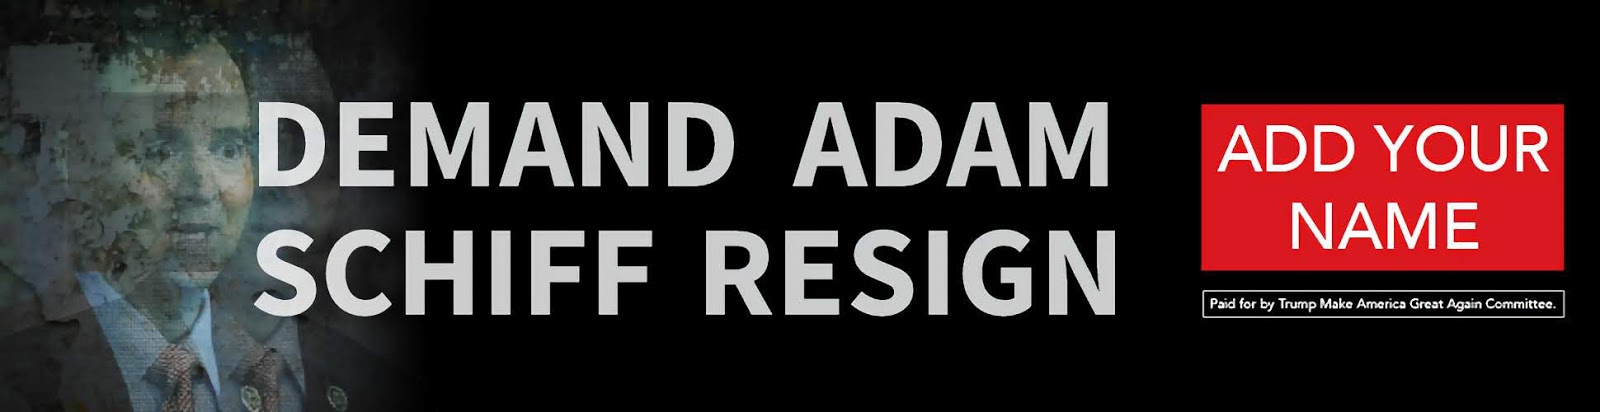 DEMAND ADAM Schiff RESIGN (alt.)